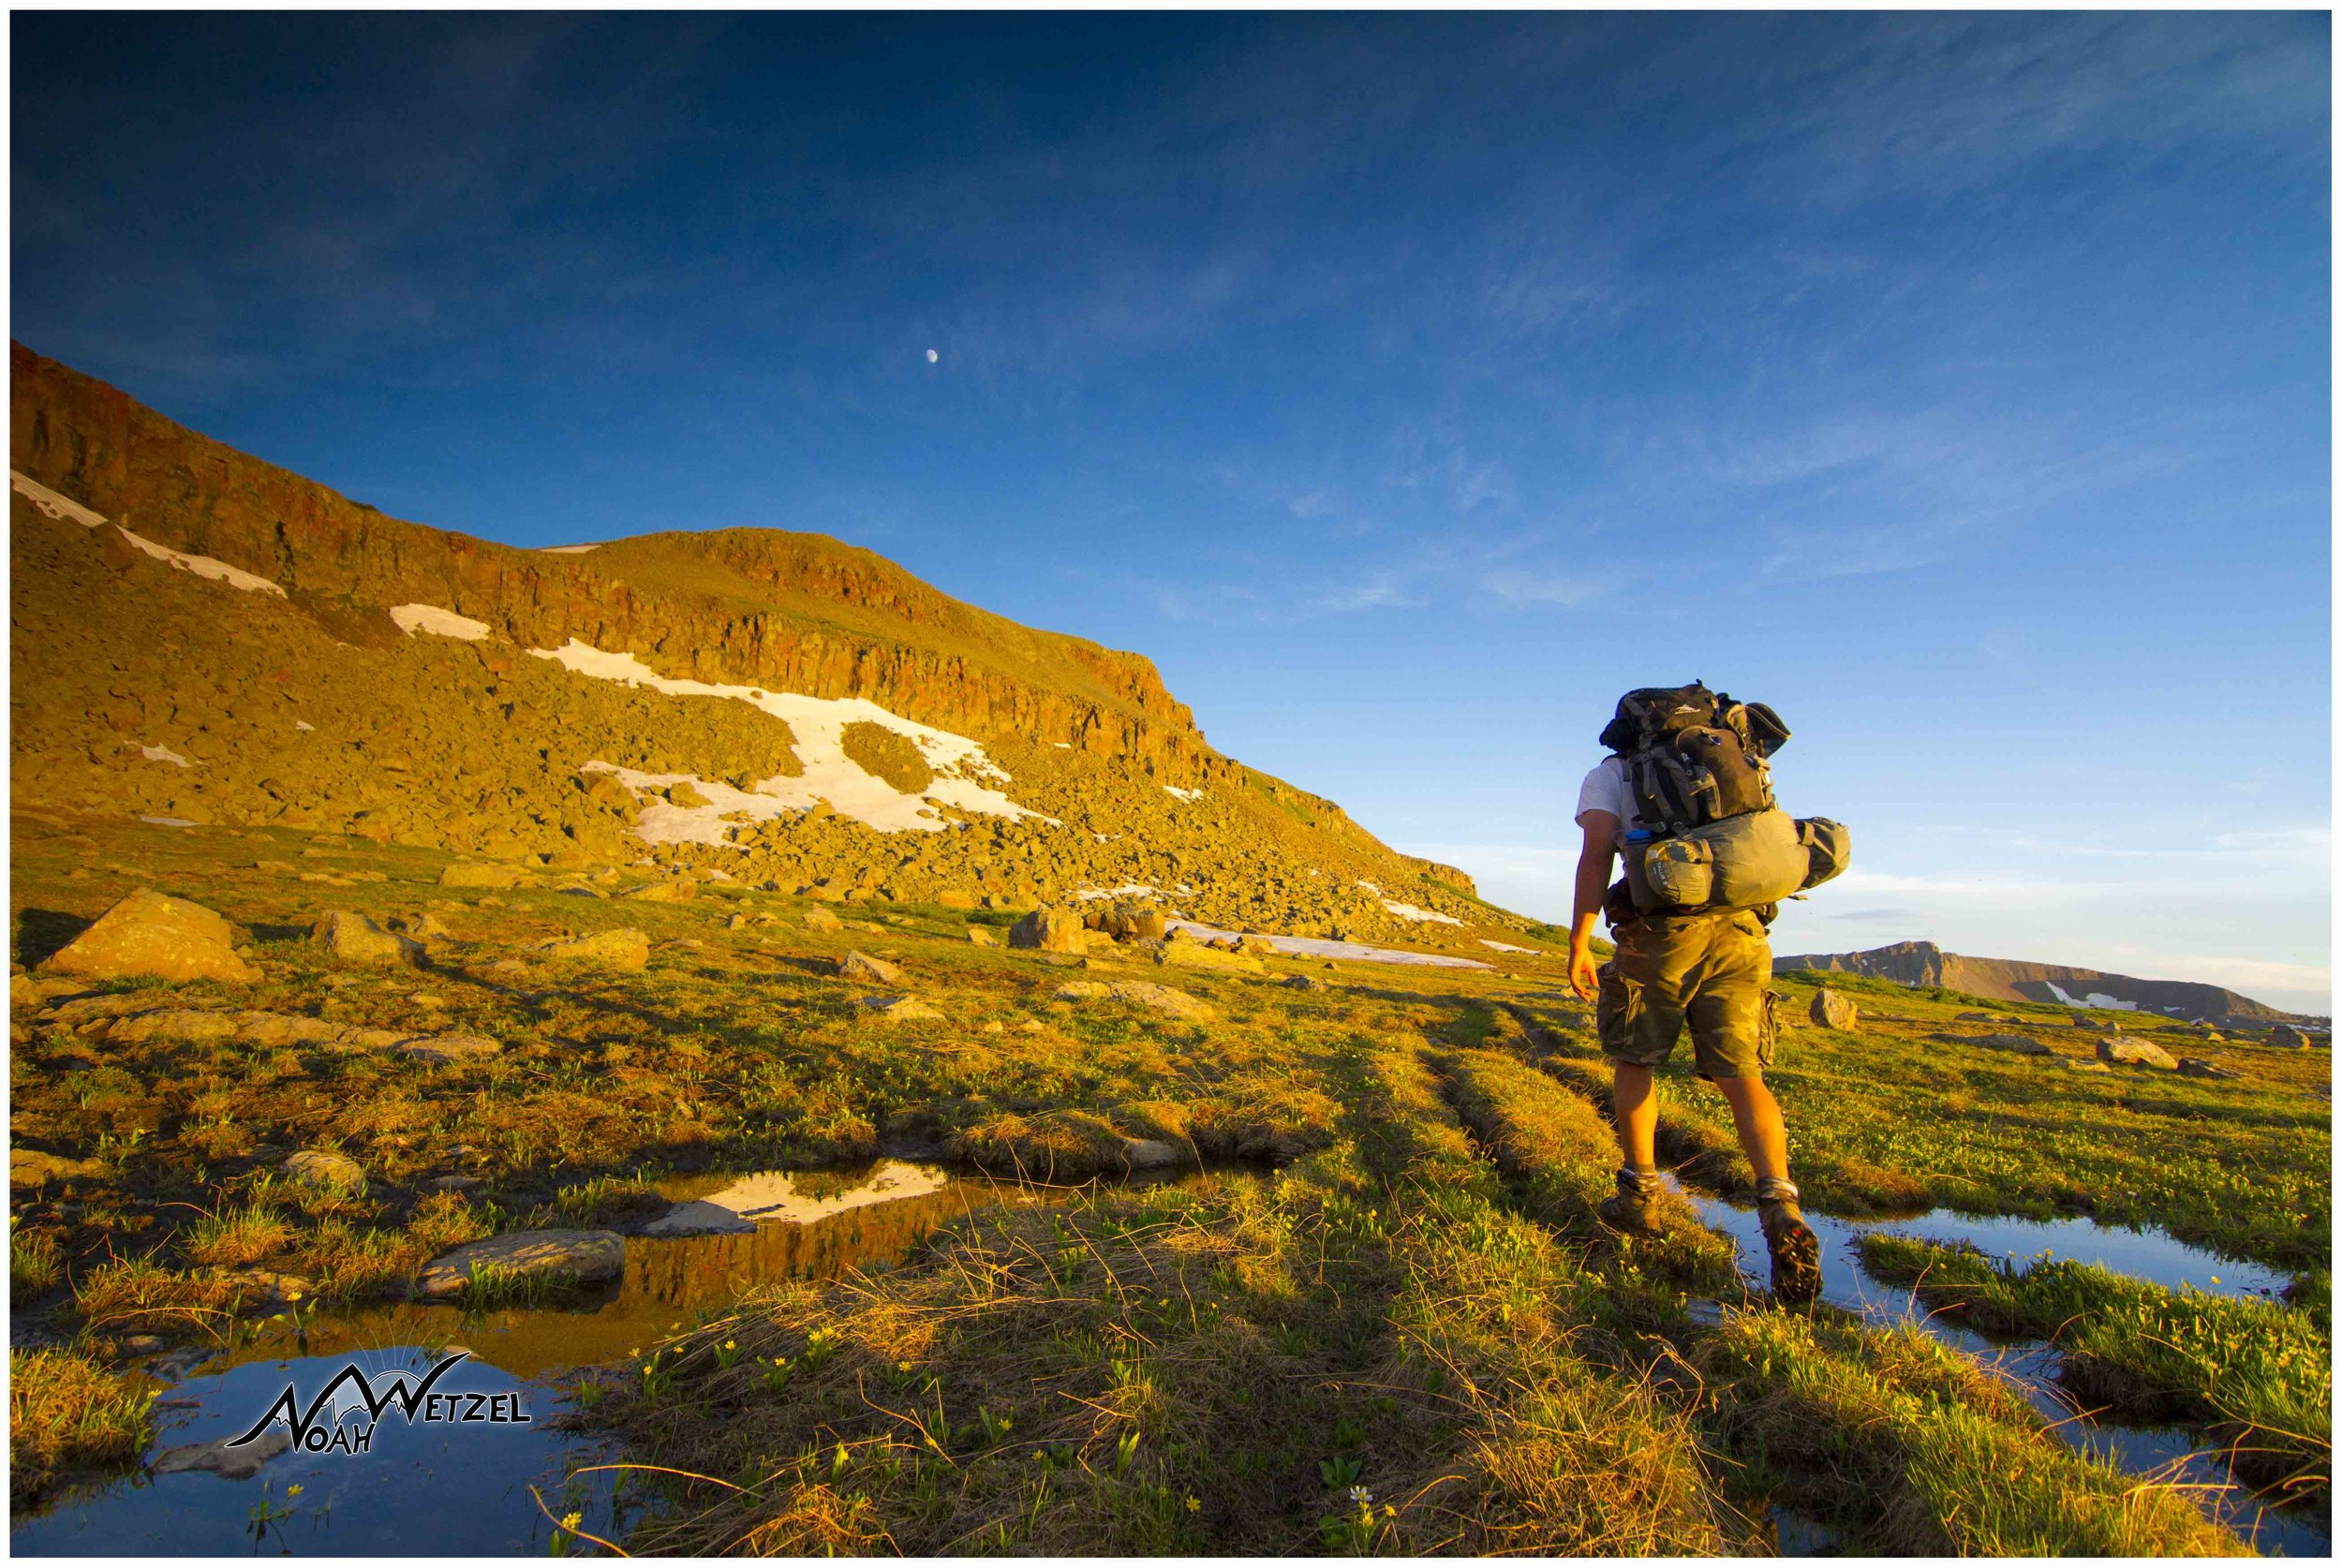 My brother Ben Wetzel making good time approaching sunset while backpacking in the Flat Tops Wilderness, Colorado.